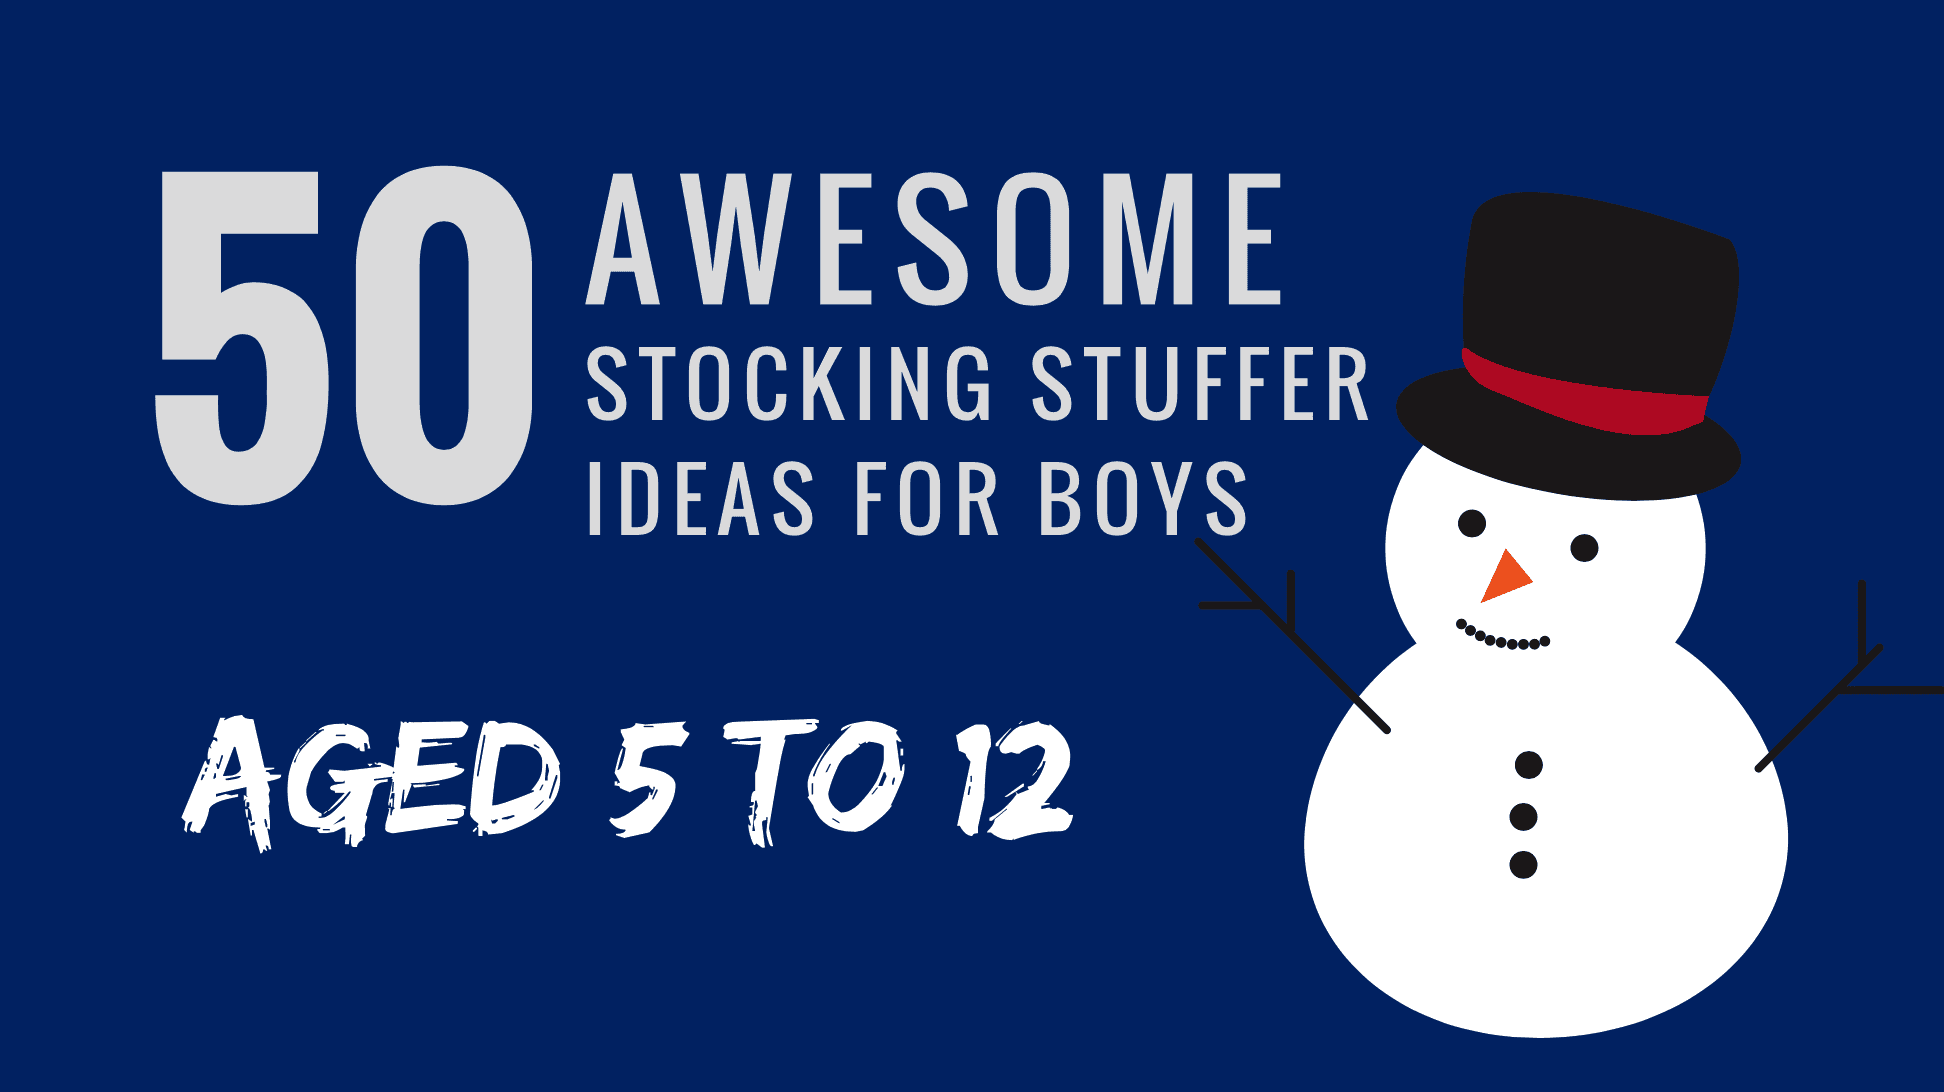 50 Awesome Stocking Stuffer Ideas For Boys 5 To12